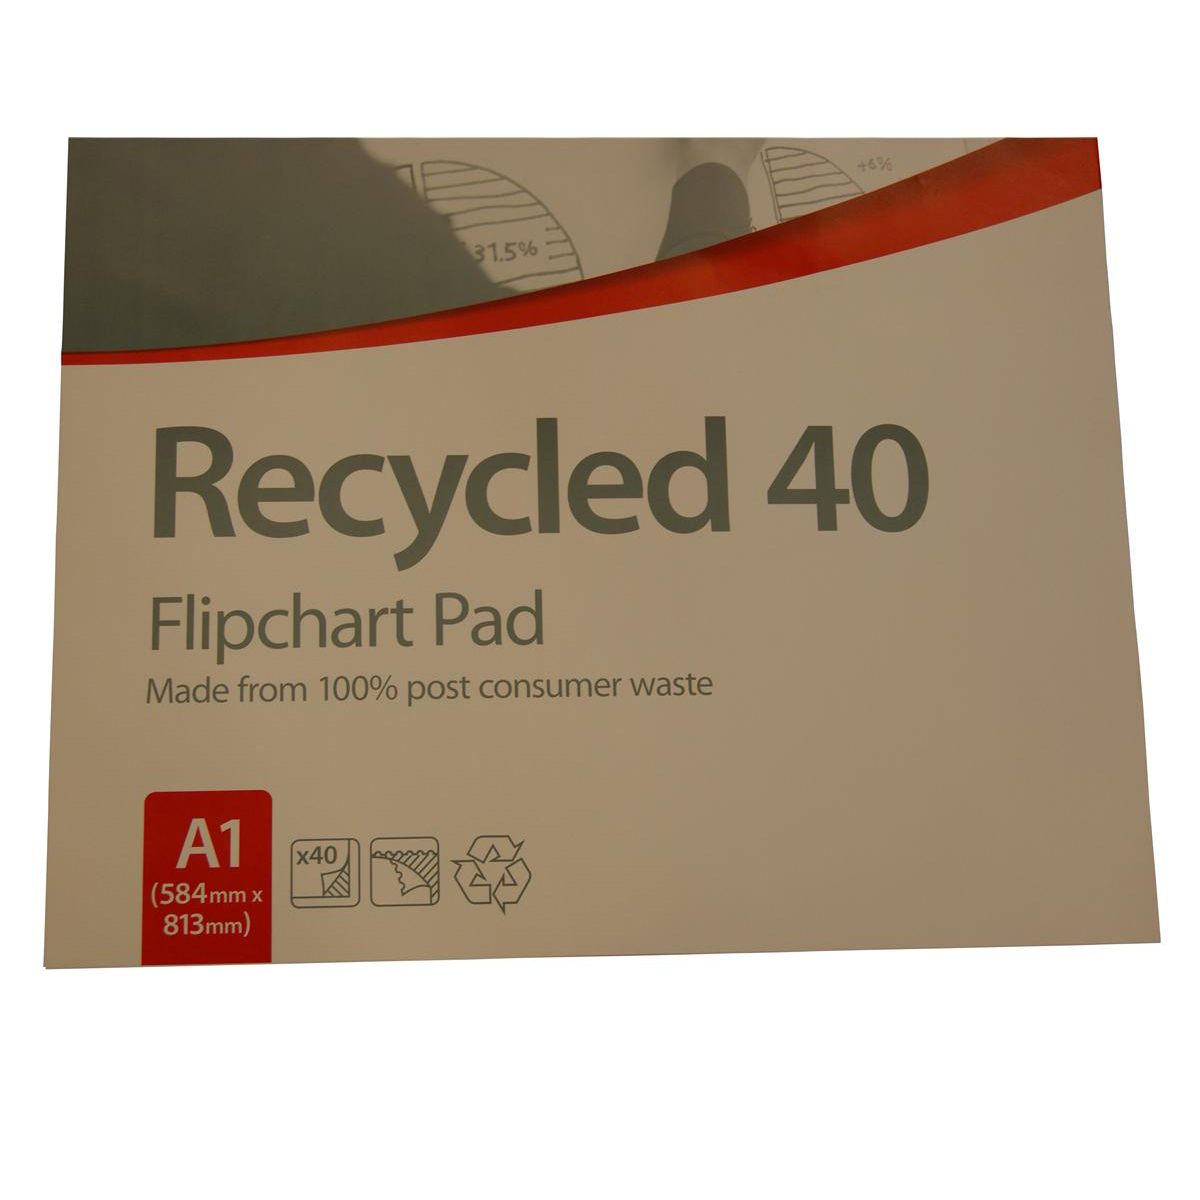 Nobo Recycled Flipchart Pad Perforated 40 Sheets 70gsm A1 Plain Ref 34631178 [Pack 5]